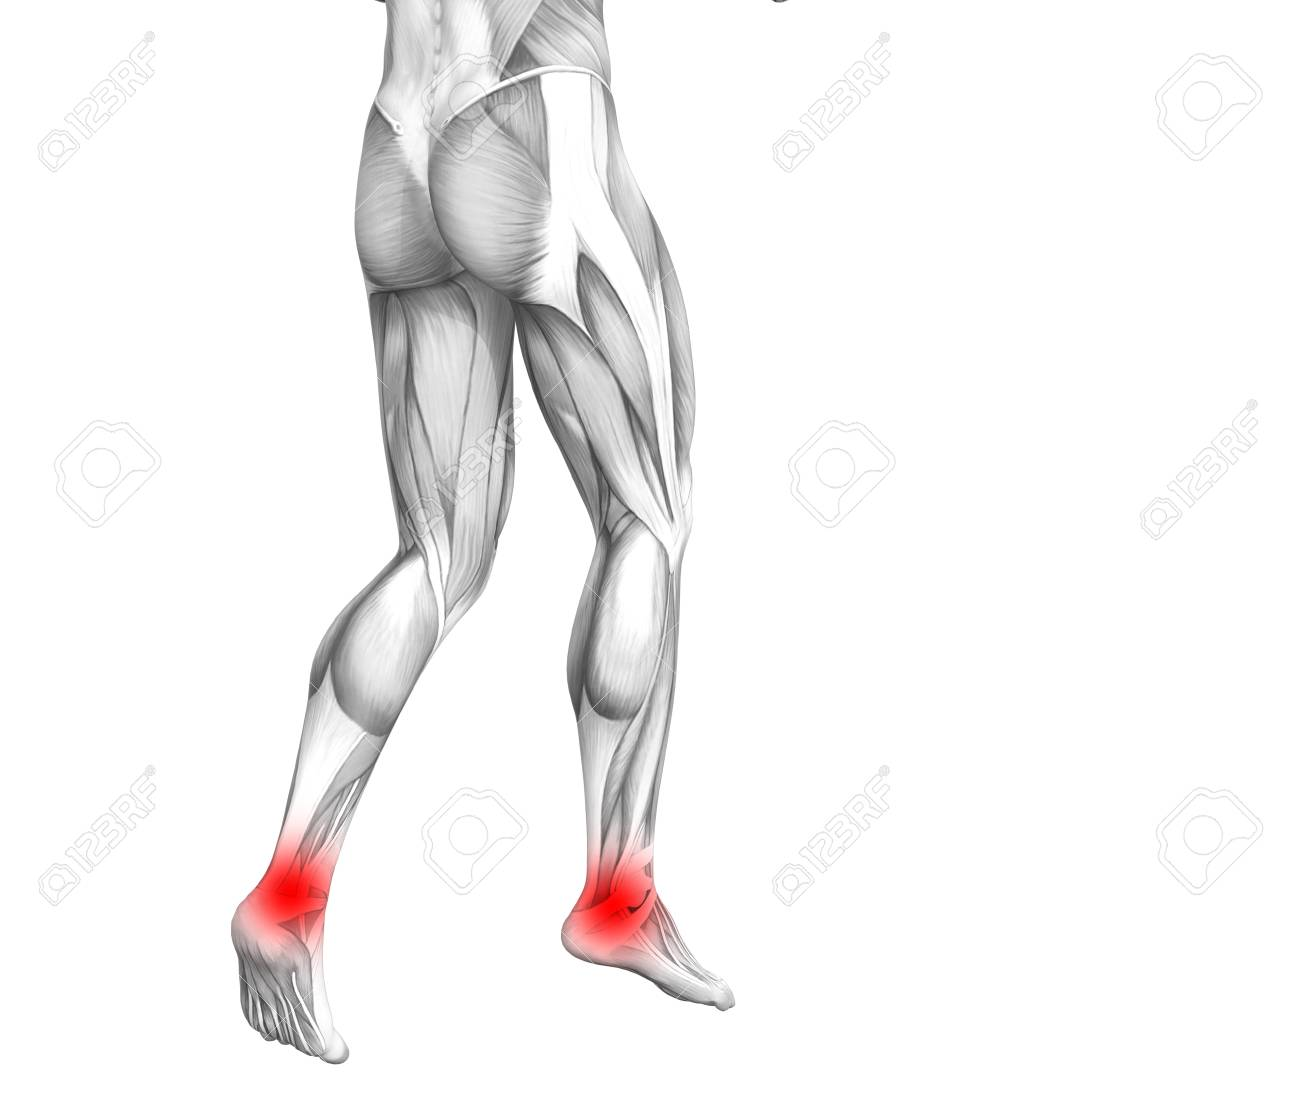 Conceptual Ankle Human Anatomy With Red Hot Spot Inflammation Or